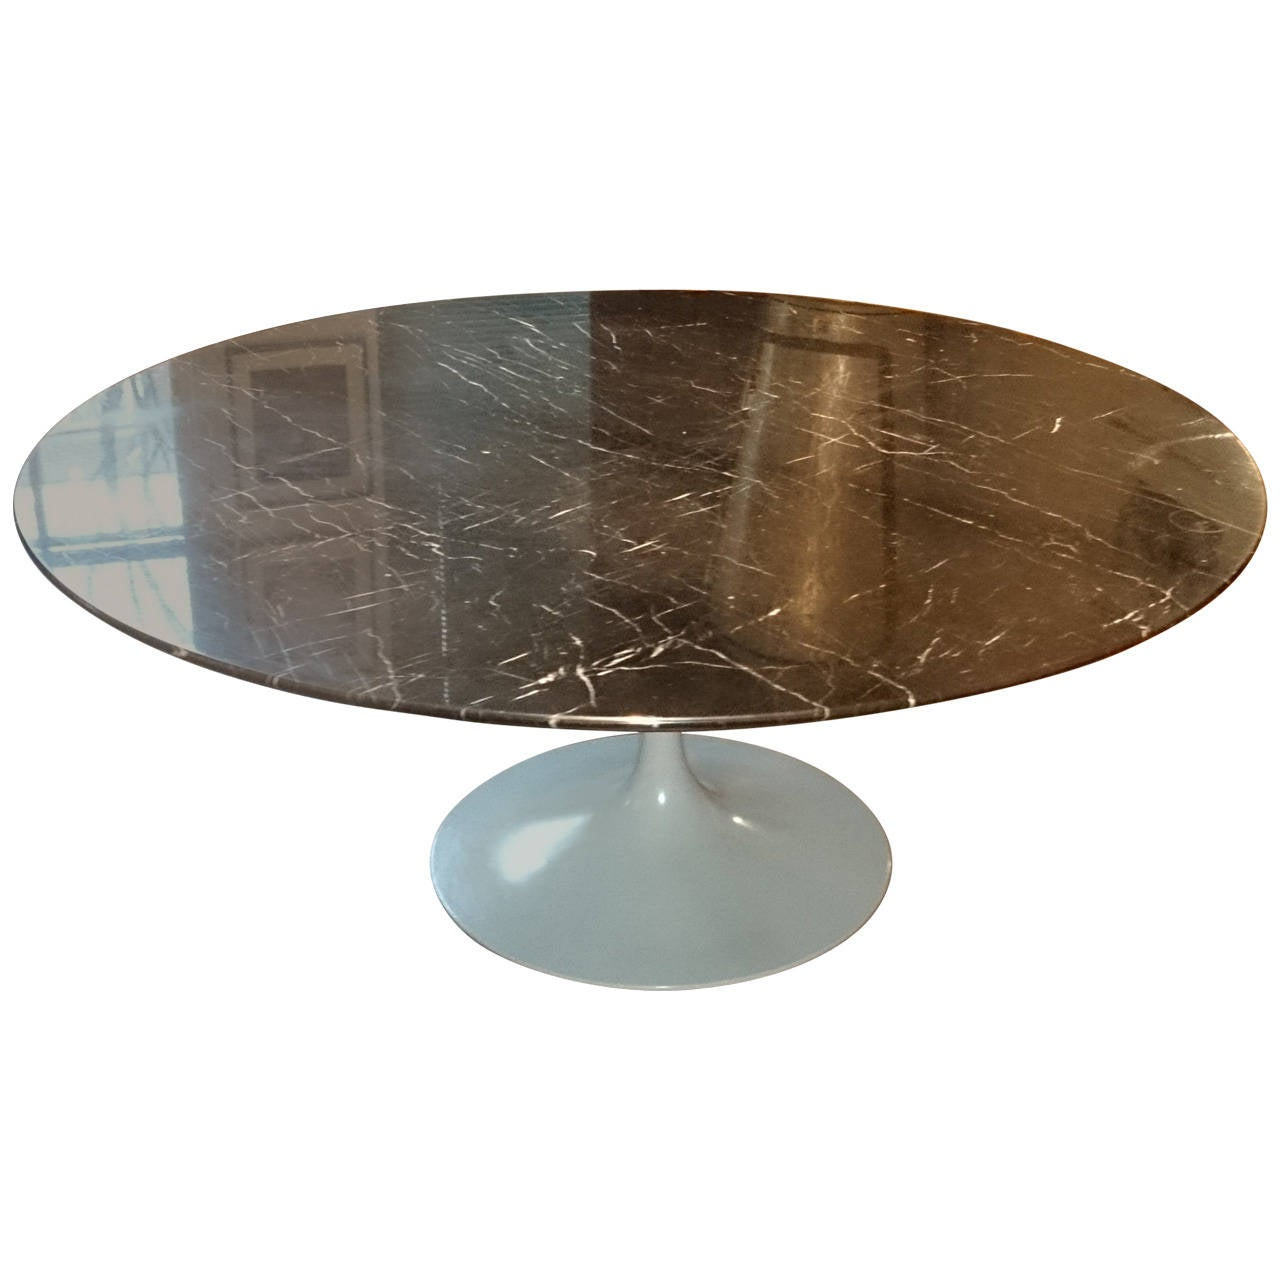 Eero Saarinen Tulip Coffee Table For Sale At 1stdibs